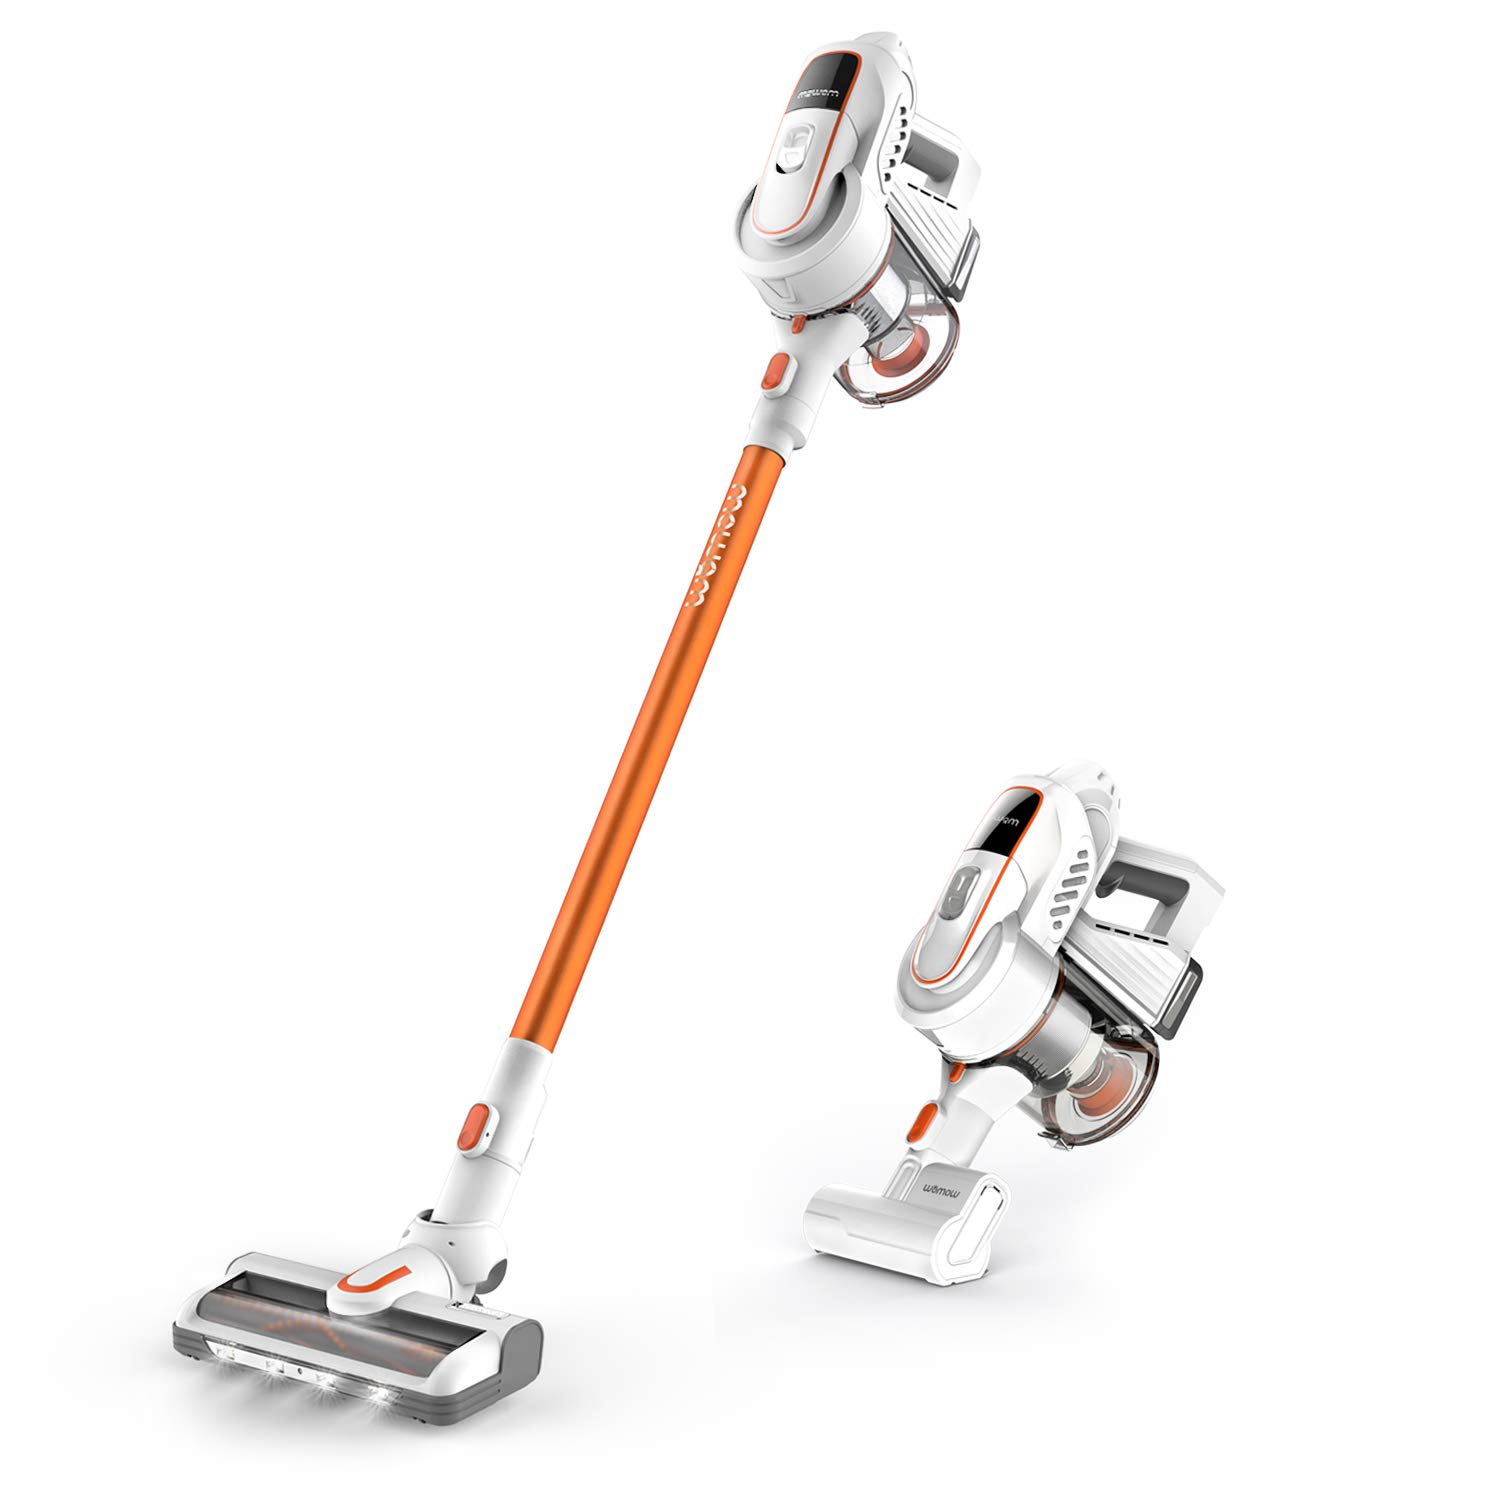 Womow W9 Cordless Brushless Lightweight